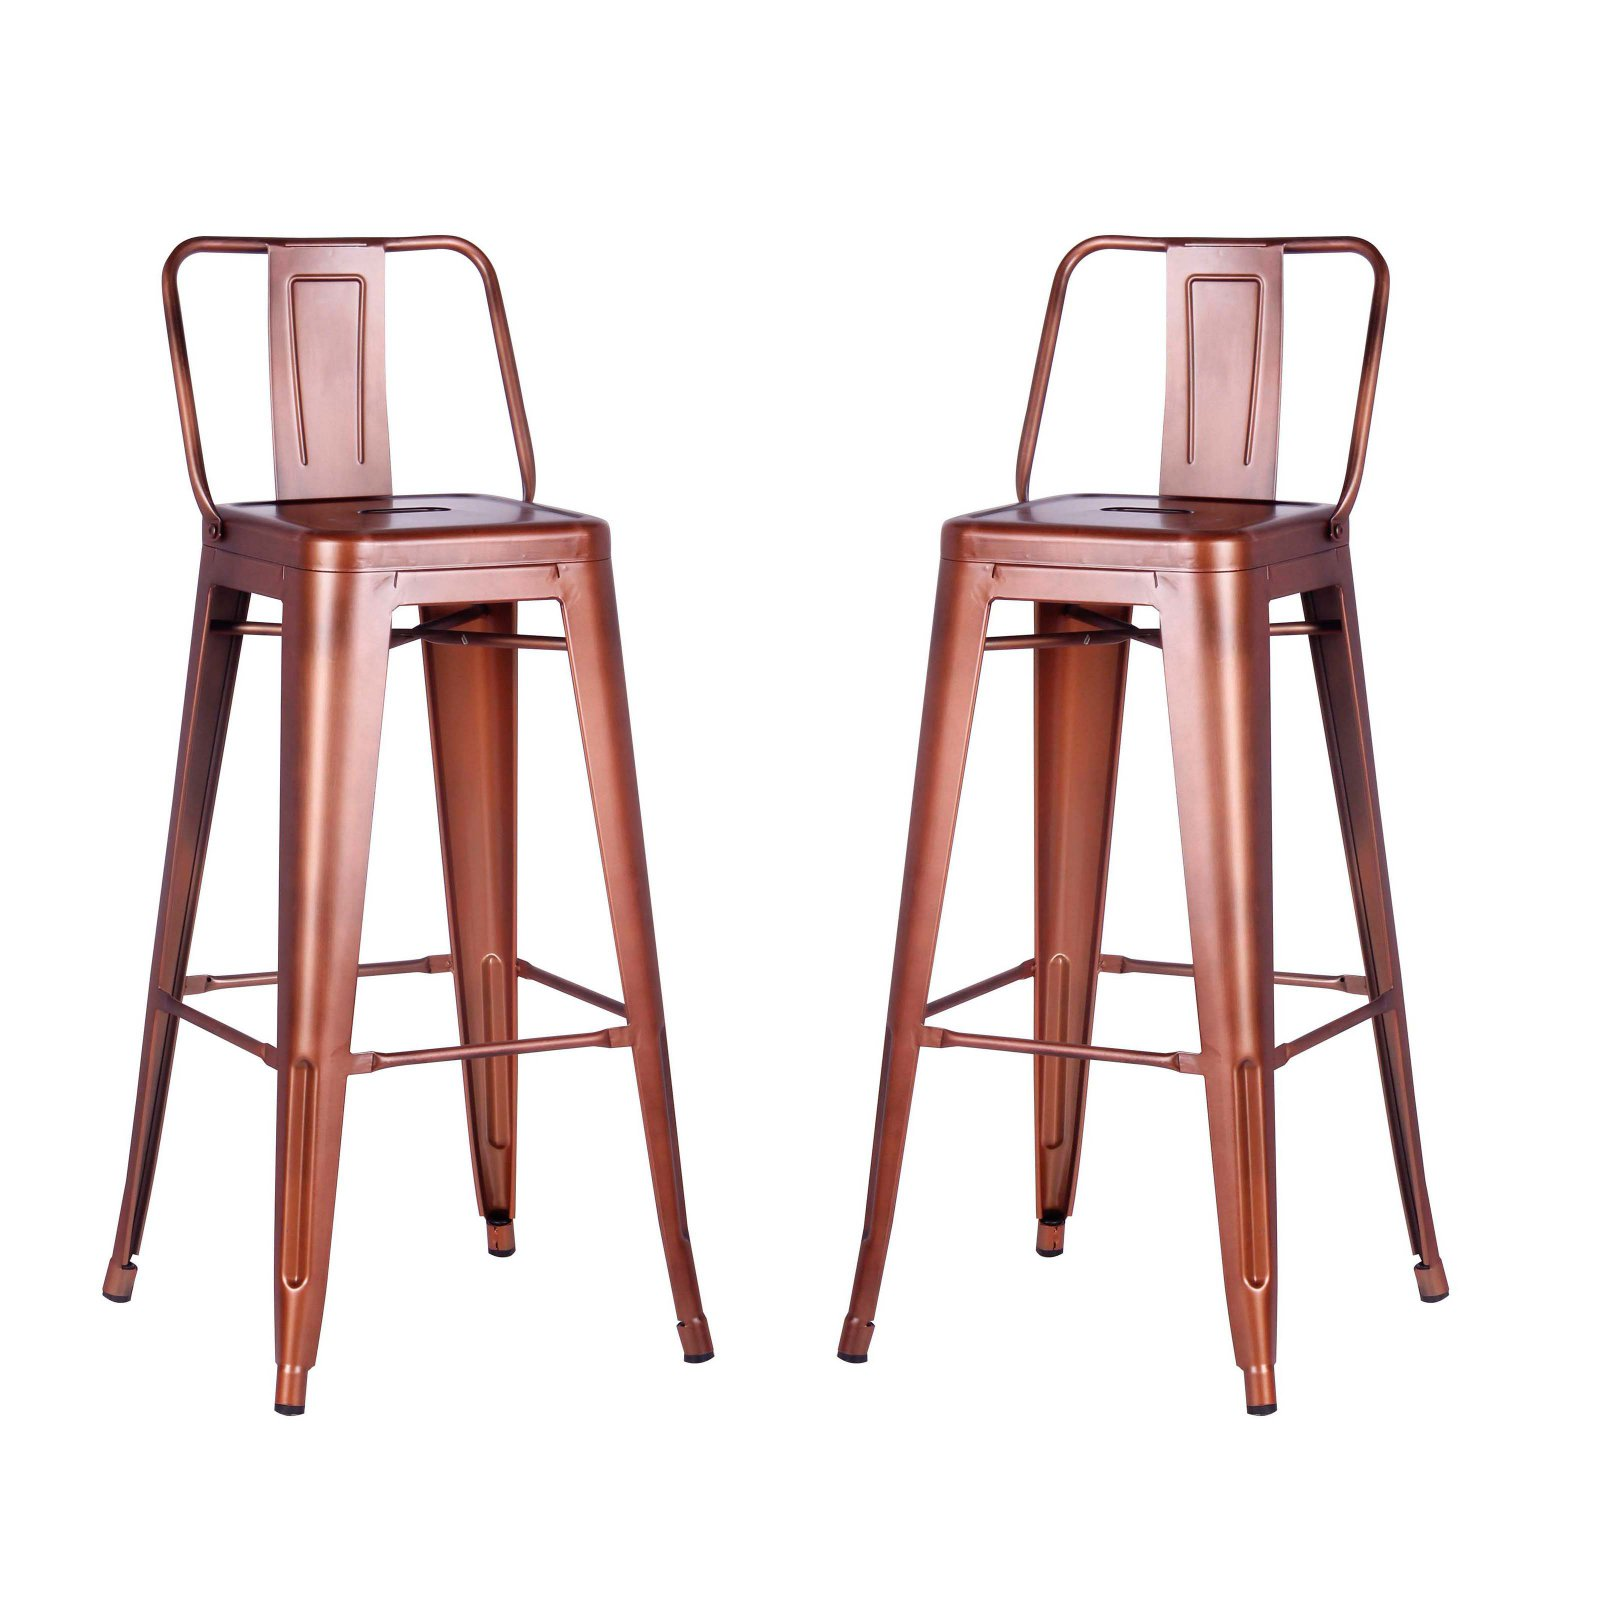 Christies Home Living 30 In Distressed Metal Bar Stool With Back